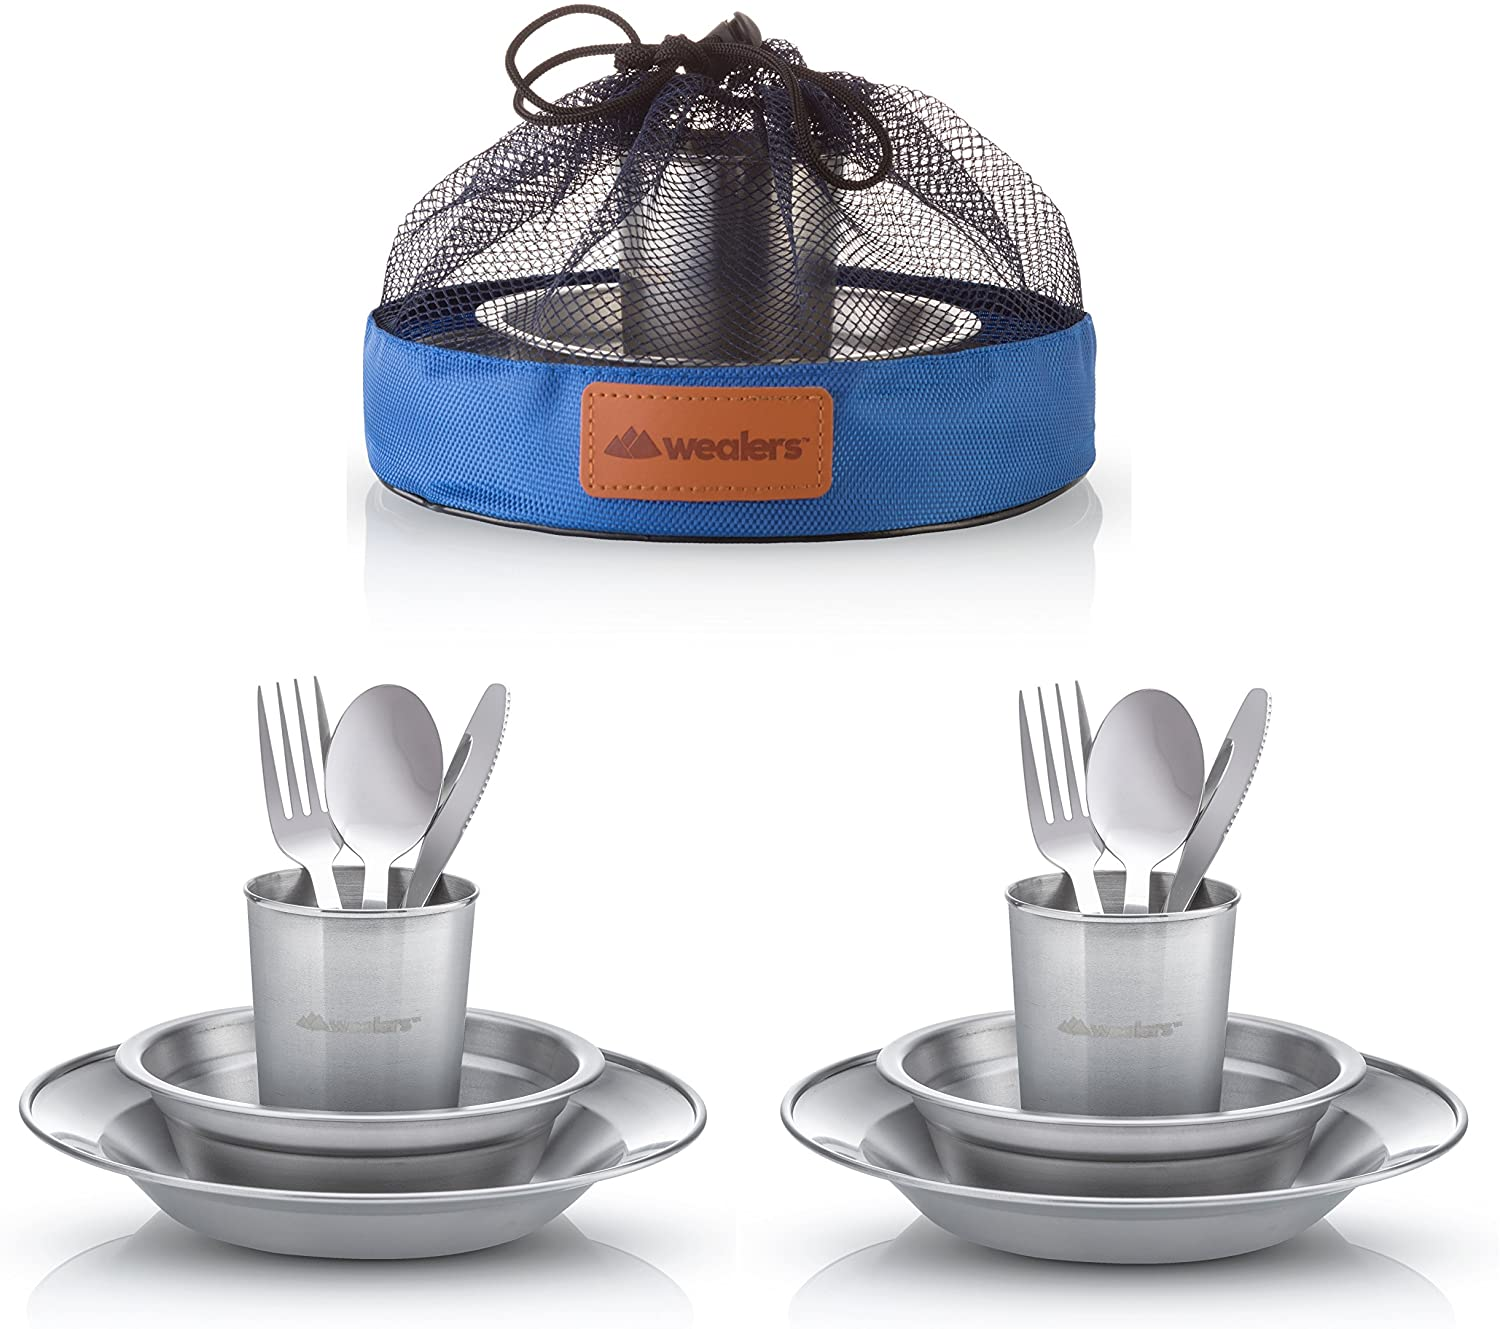 Unique Complete Messware Kit Polished Stainless Steel Dishes Set| Tableware| Dinnerware| Camping| Includes - Cups | Plates| Bowls| Cutlery| Comes in ...